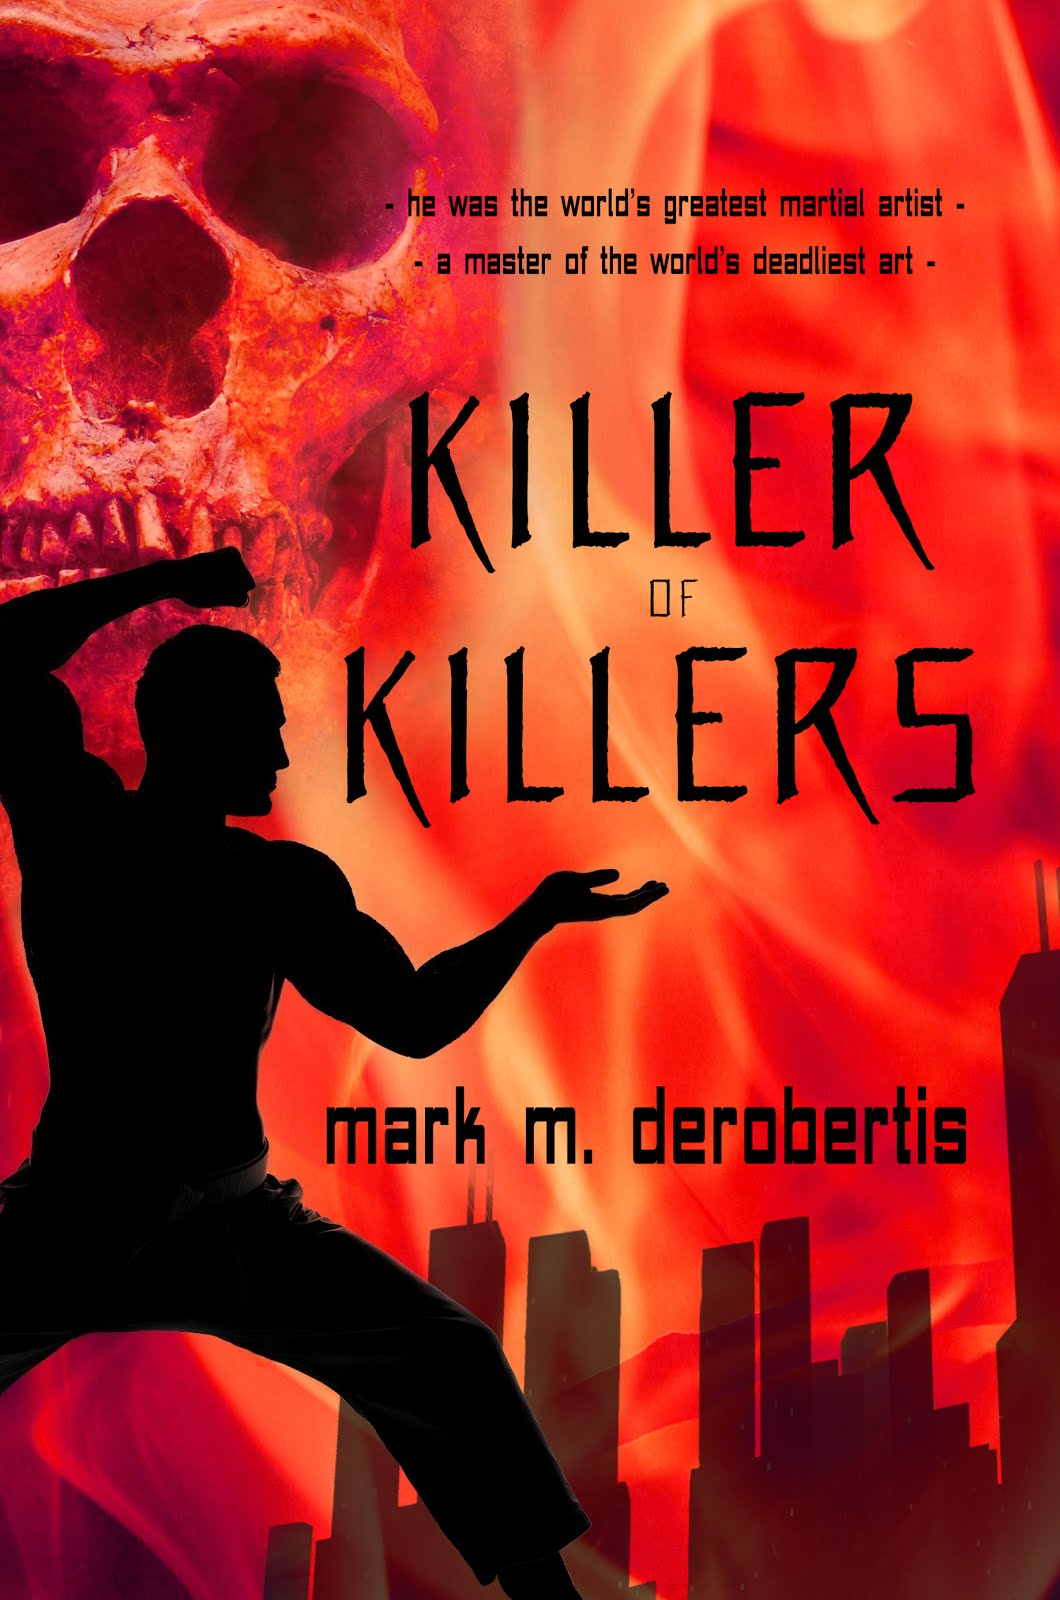 KILLER OF KILLERS - Book One in the Killer series now available - click on image to buy